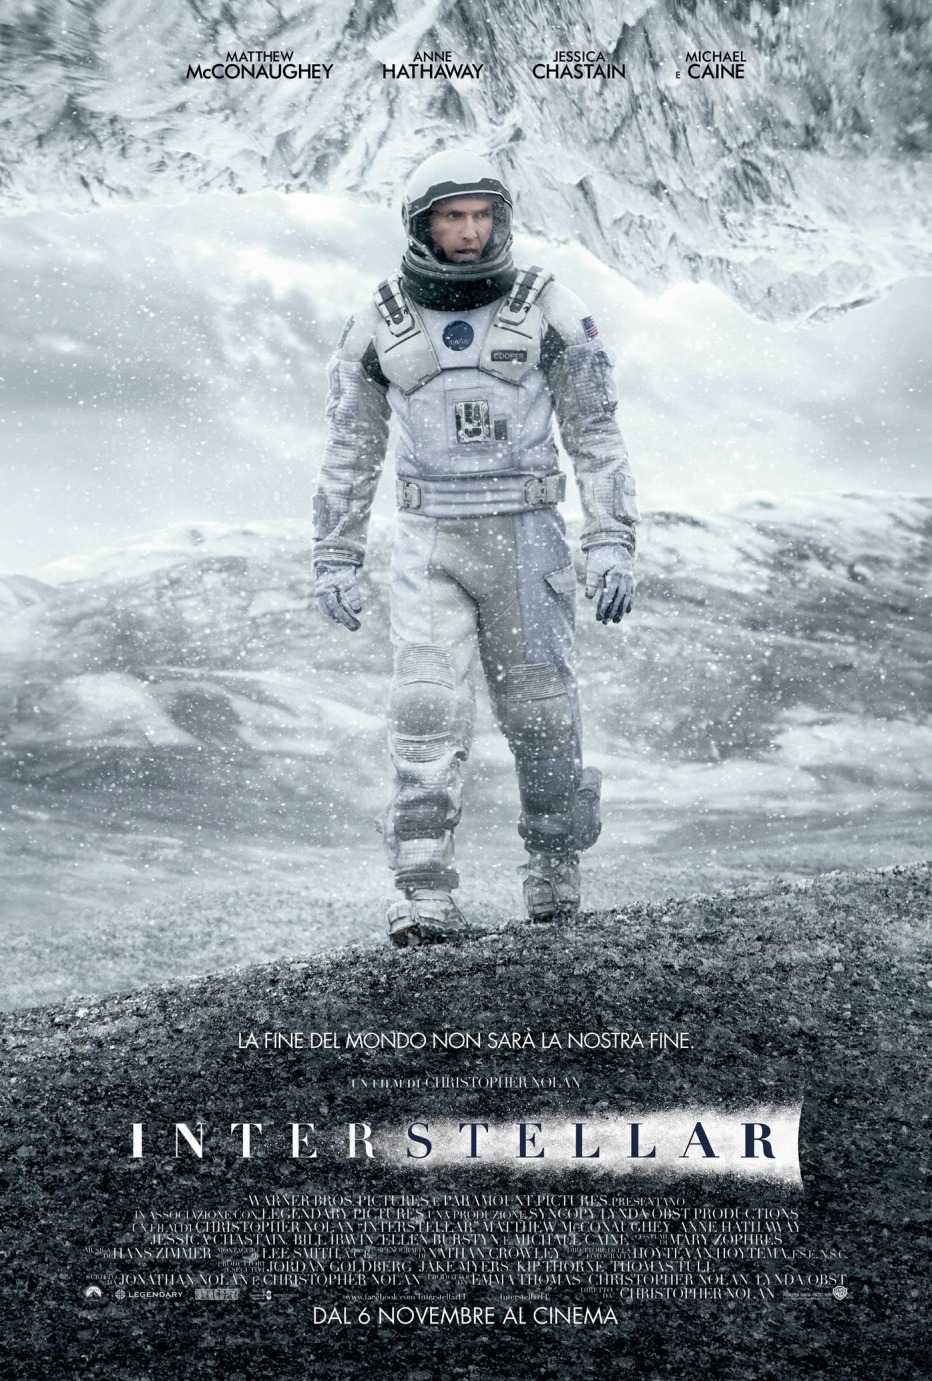 interstellar-2014-nolan-32.jpg